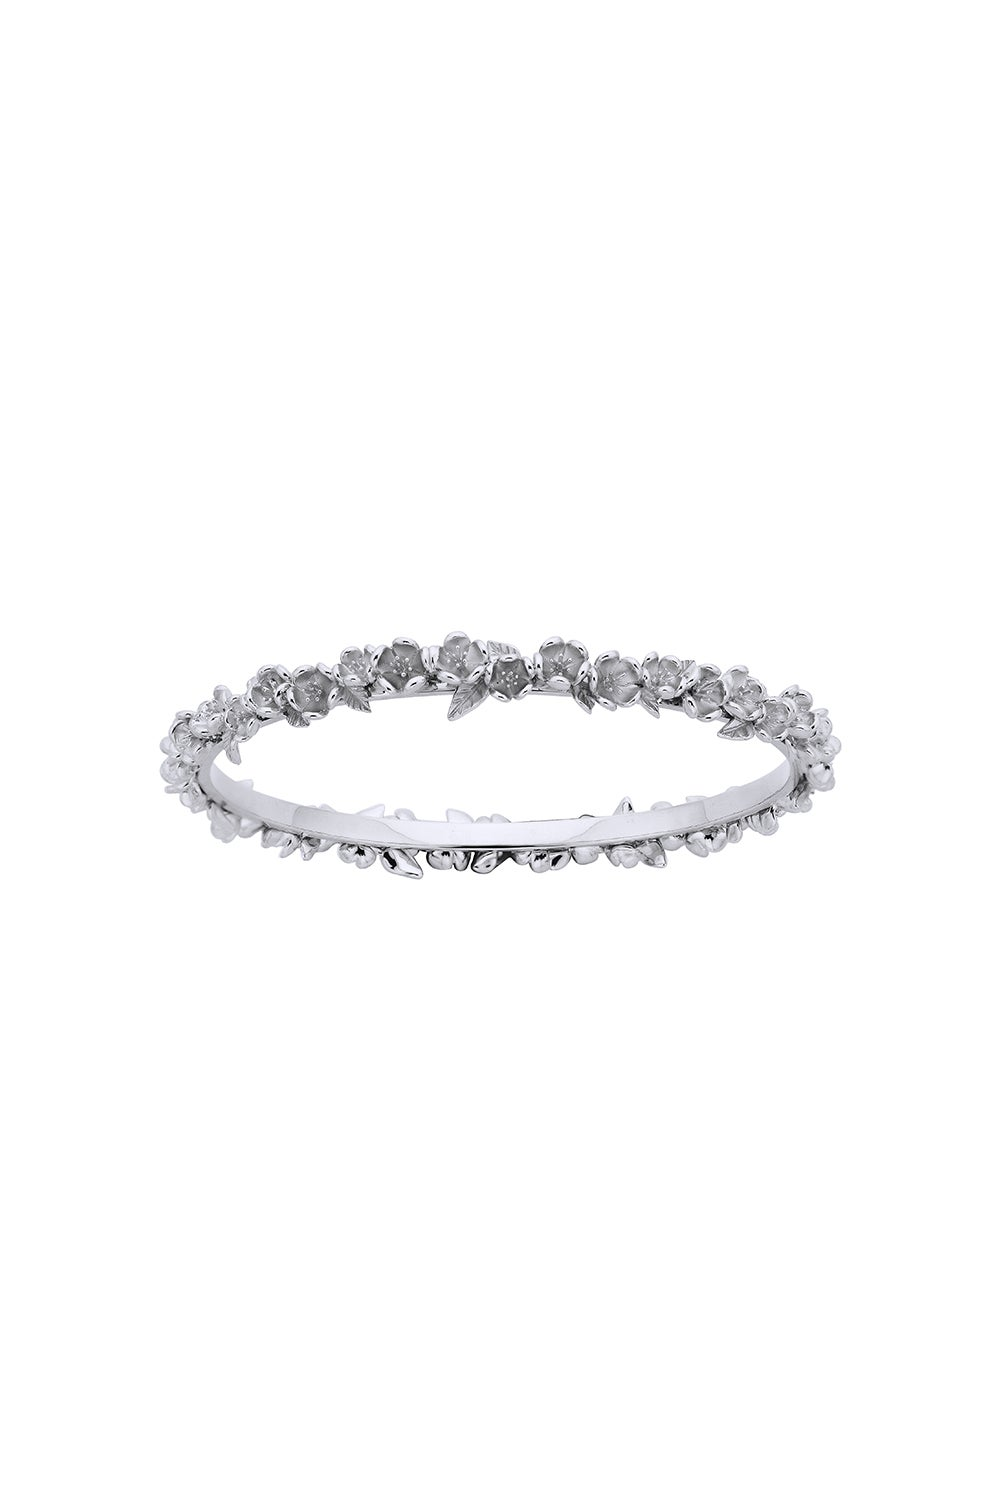 Wreath Bangle Silver 65mm